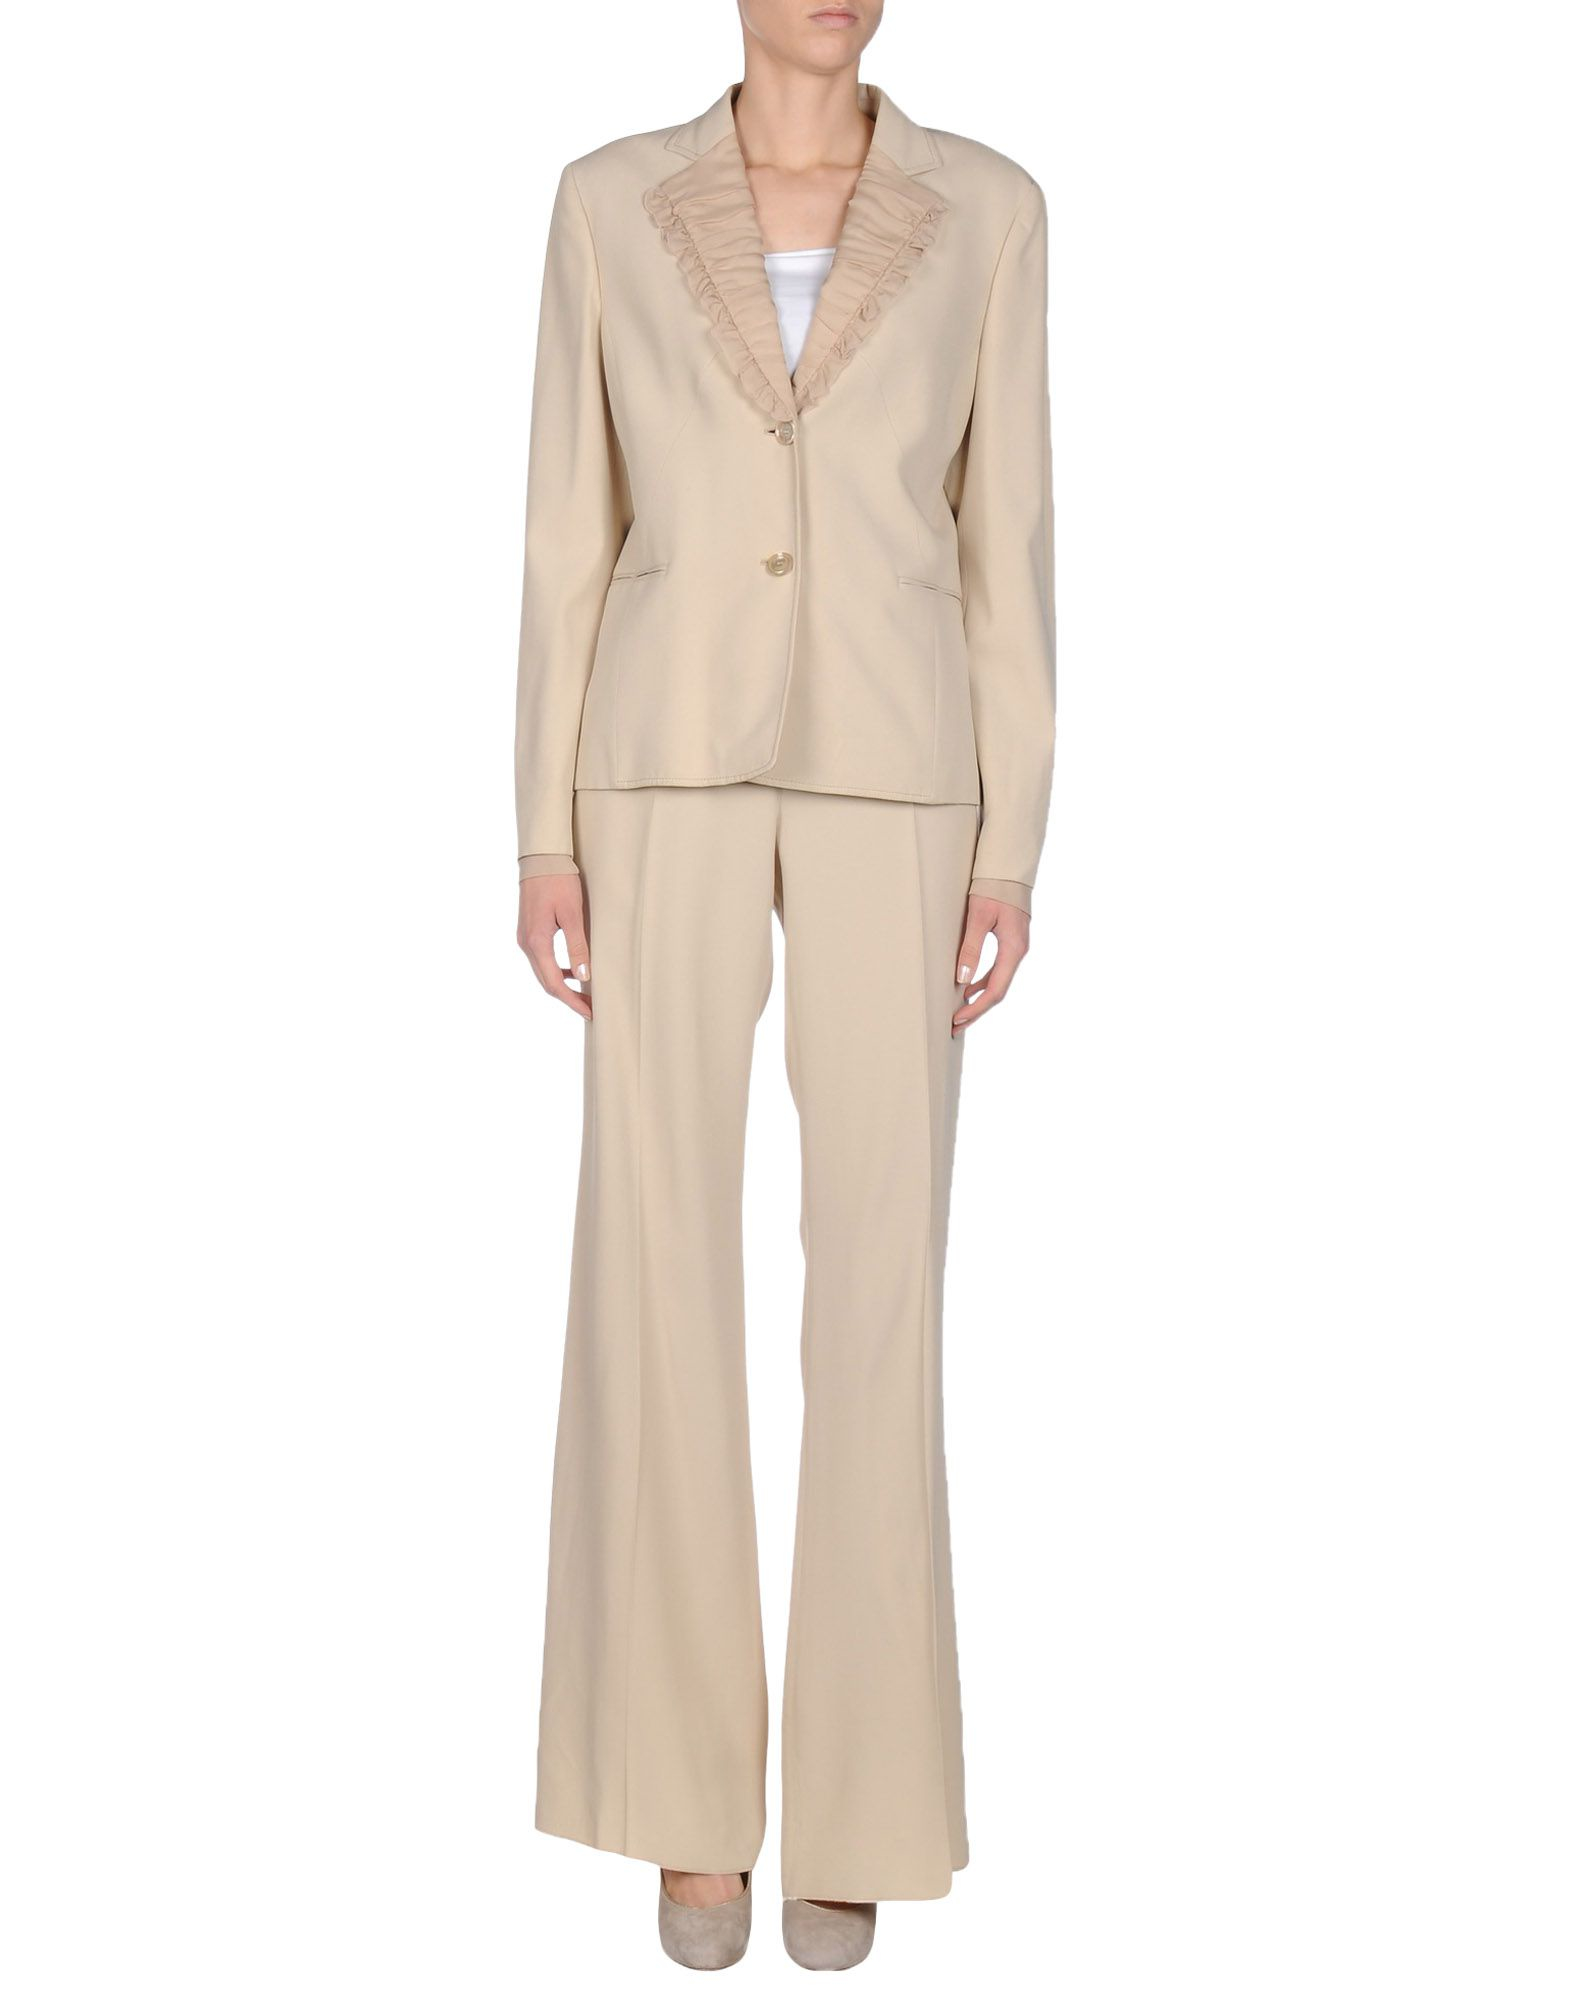 Beige Pant Suits Women. dolcehouse.ml supply you the modern cool merchandises around the finest sweeping price tag, all of us guaranteed our things delight top dolcehouse.ml this site, you will observe wholly rather beige pant suits women along with better services in addition to lowest price.